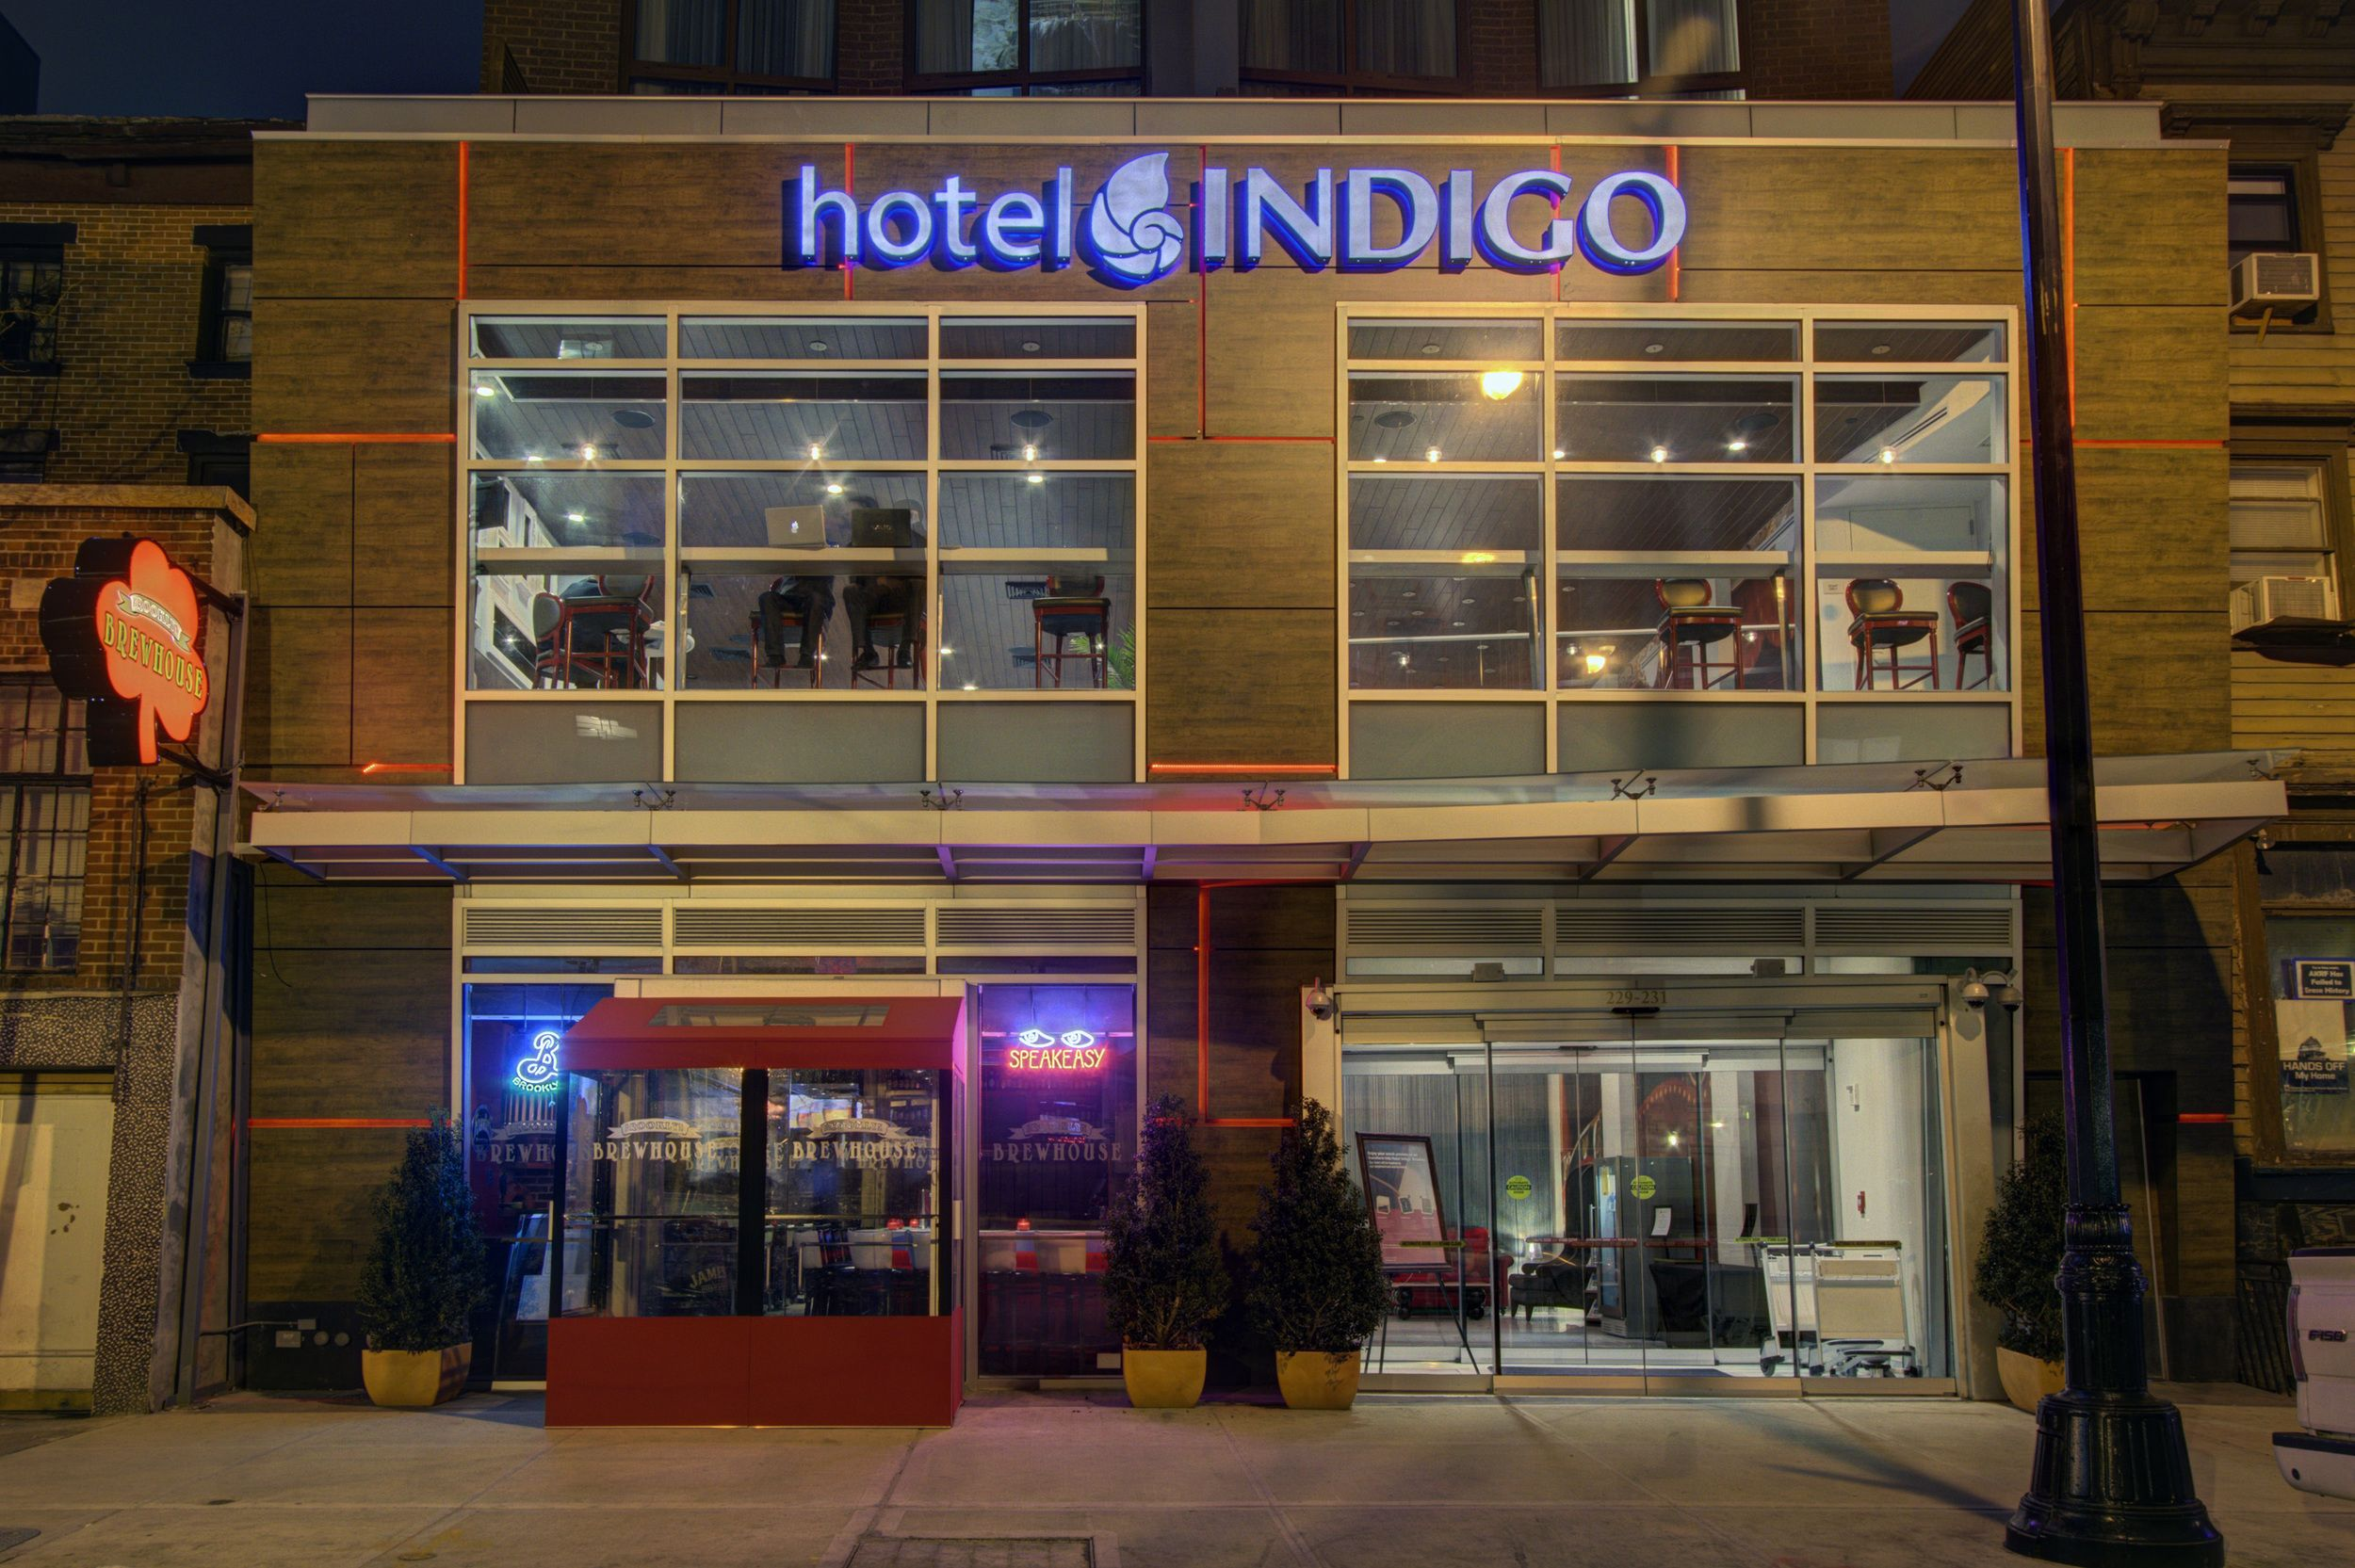 Check Out Hotel Indigo In The Heart Of Brooklyn With Images